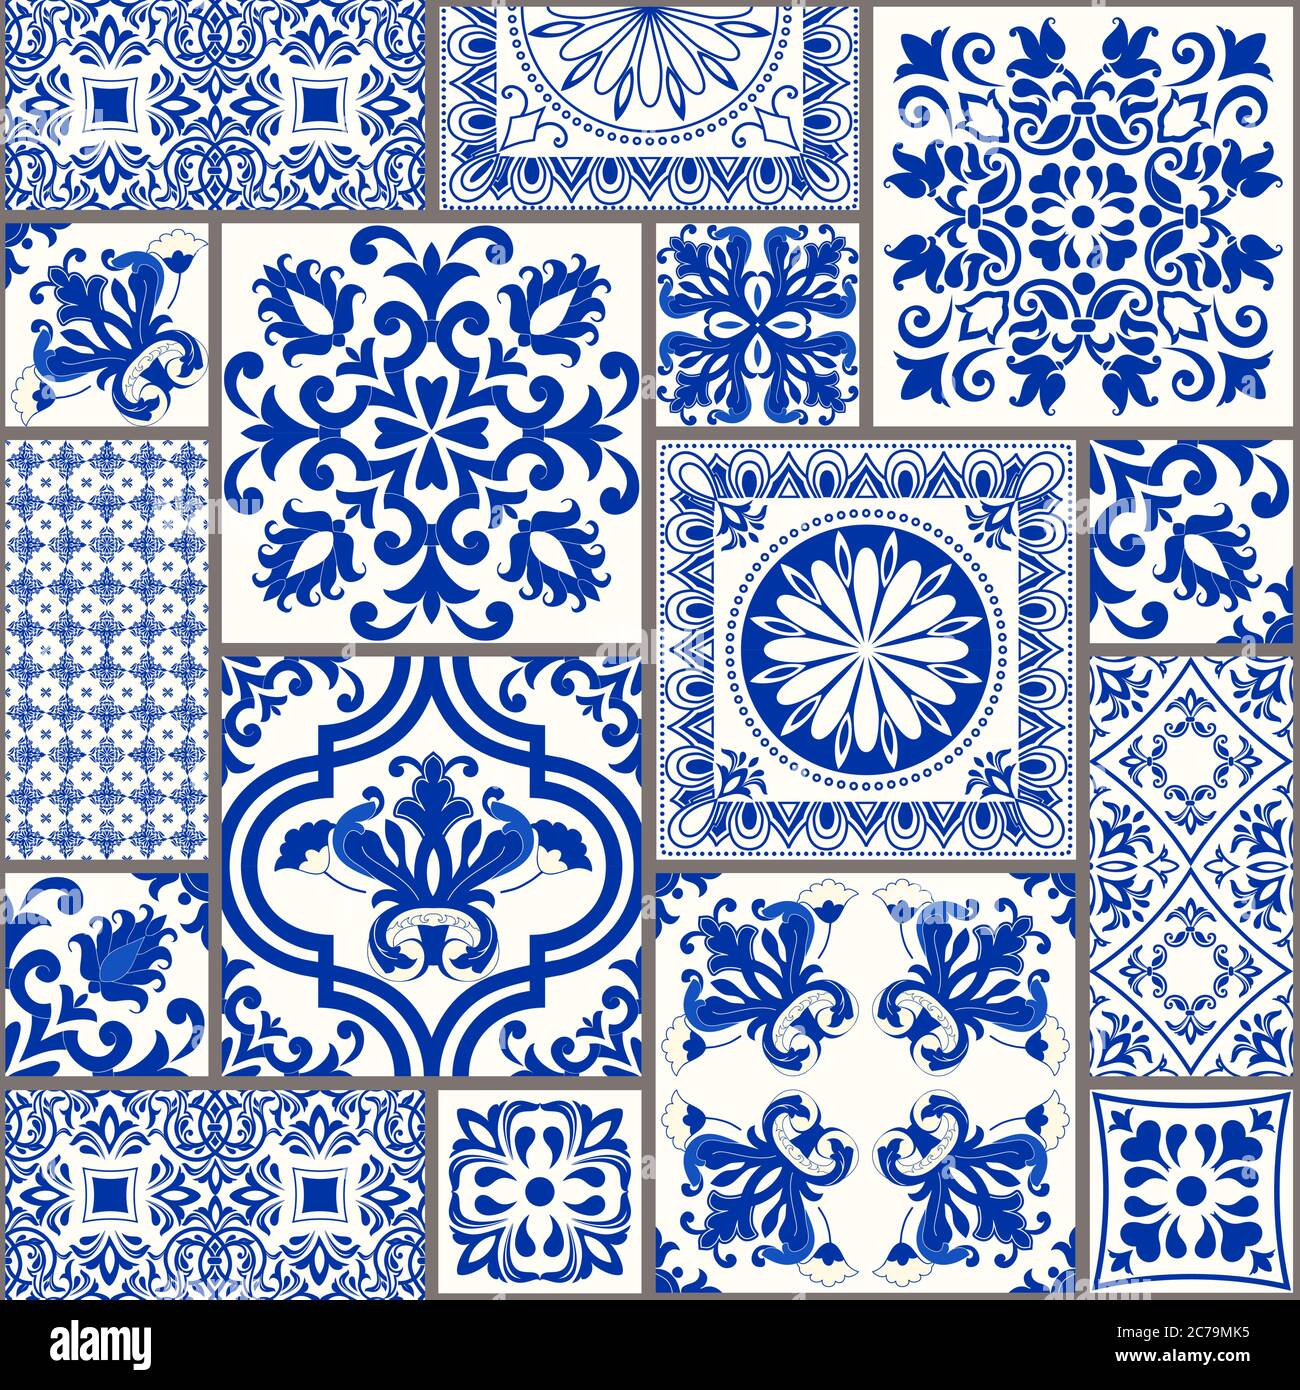 https www alamy com set of tiles azulejos in blue white original traditional portuguese and spain decor ceramic tile in talavera style gaudi mosaic vector image365934105 html